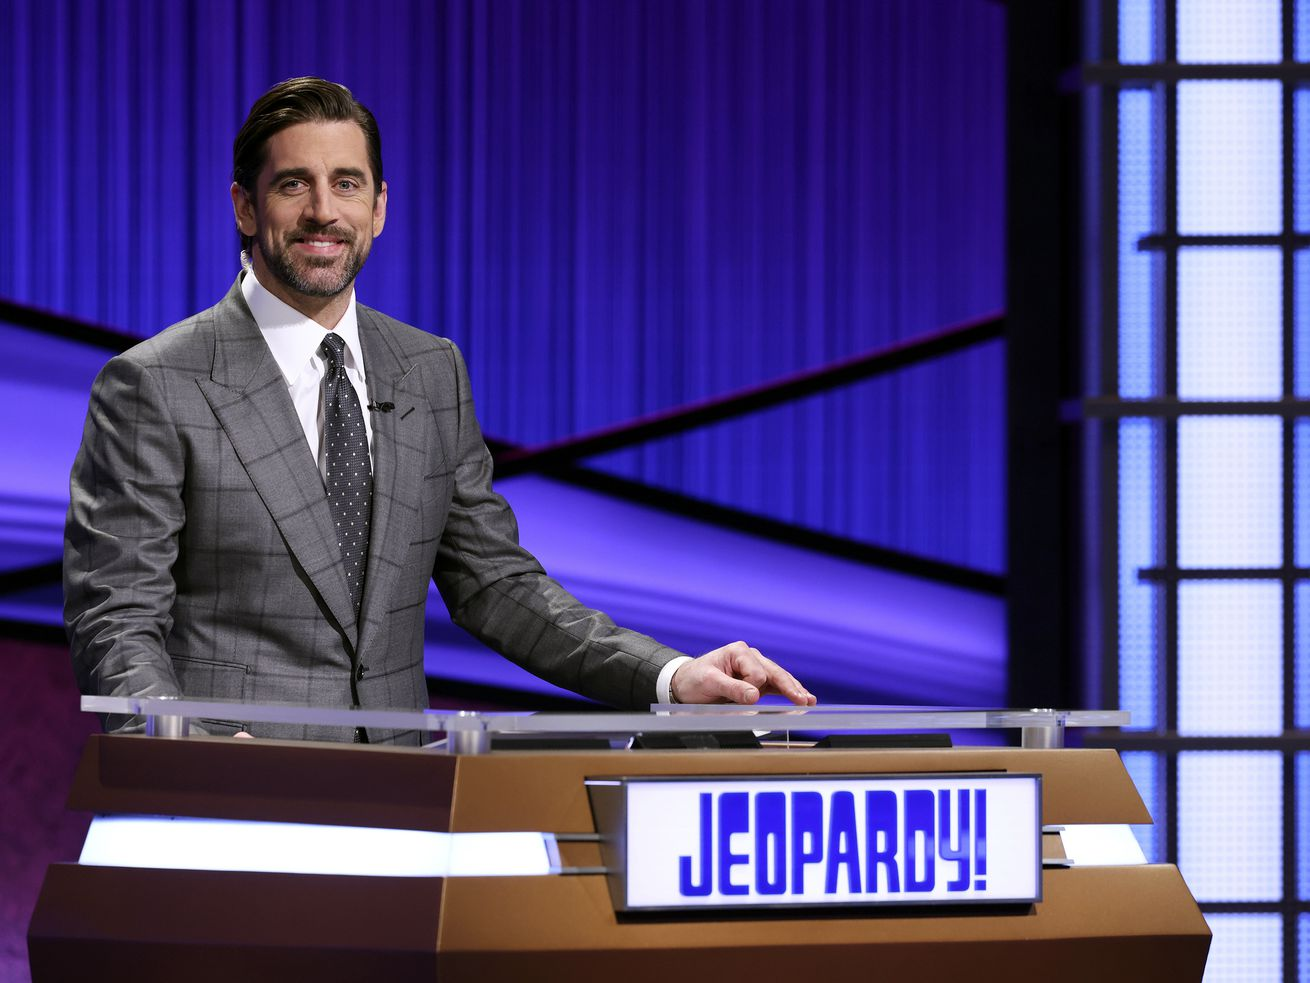 """Packers quarterback Aaron Rodgers got an unexpected question about the NFC Championship Game during his """"Jeopardy!"""" debut."""